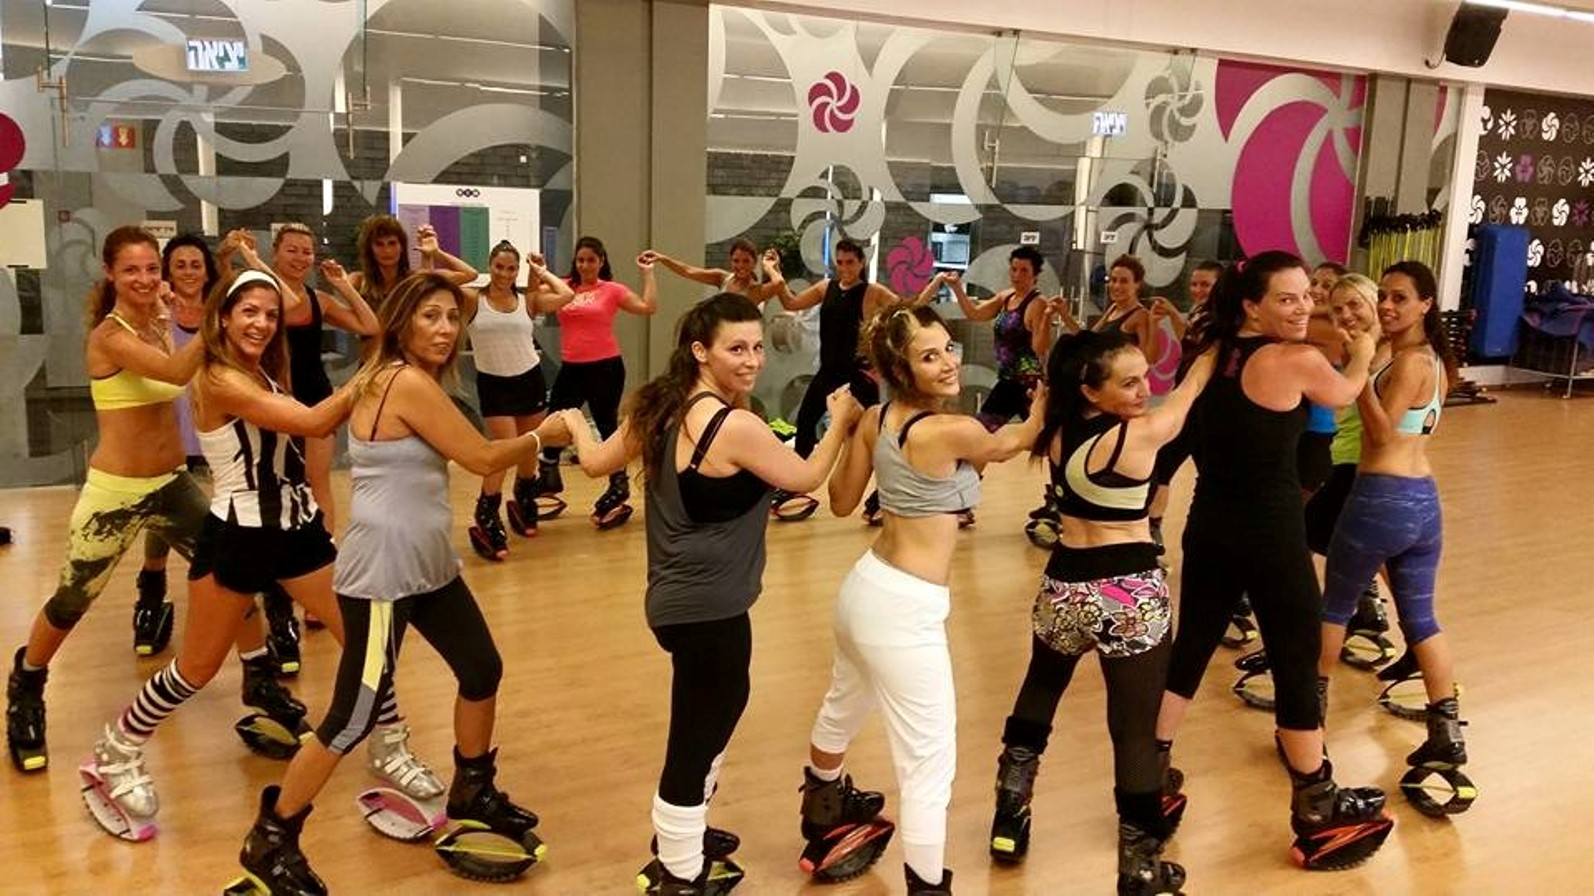 Rachely Batan's Kangoo Jumps class. Photo via Facebook